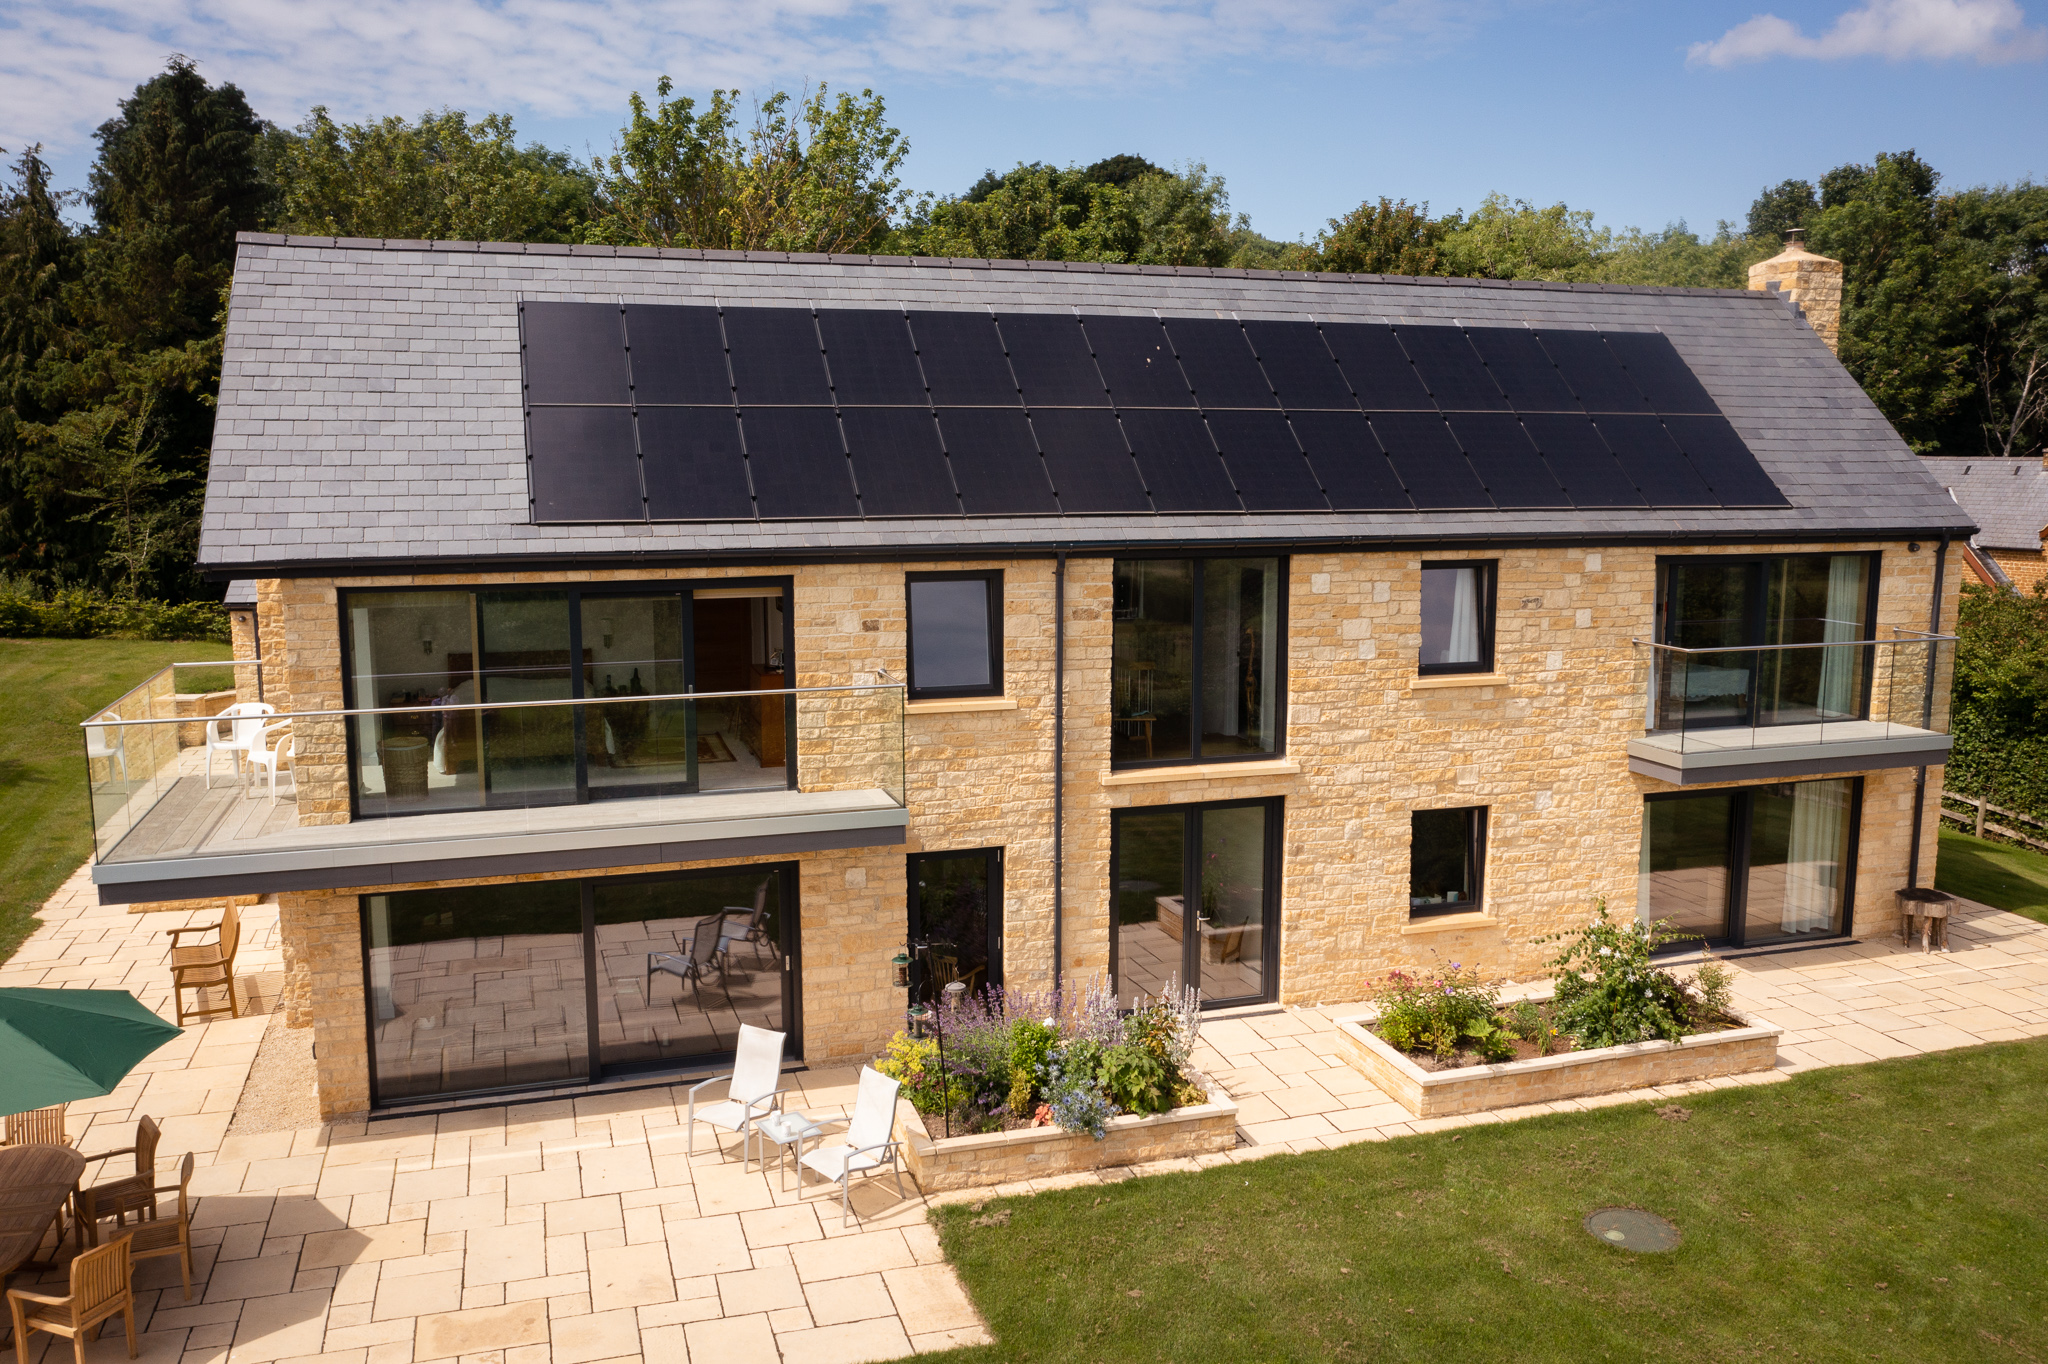 Cost-based mortgages for self builders